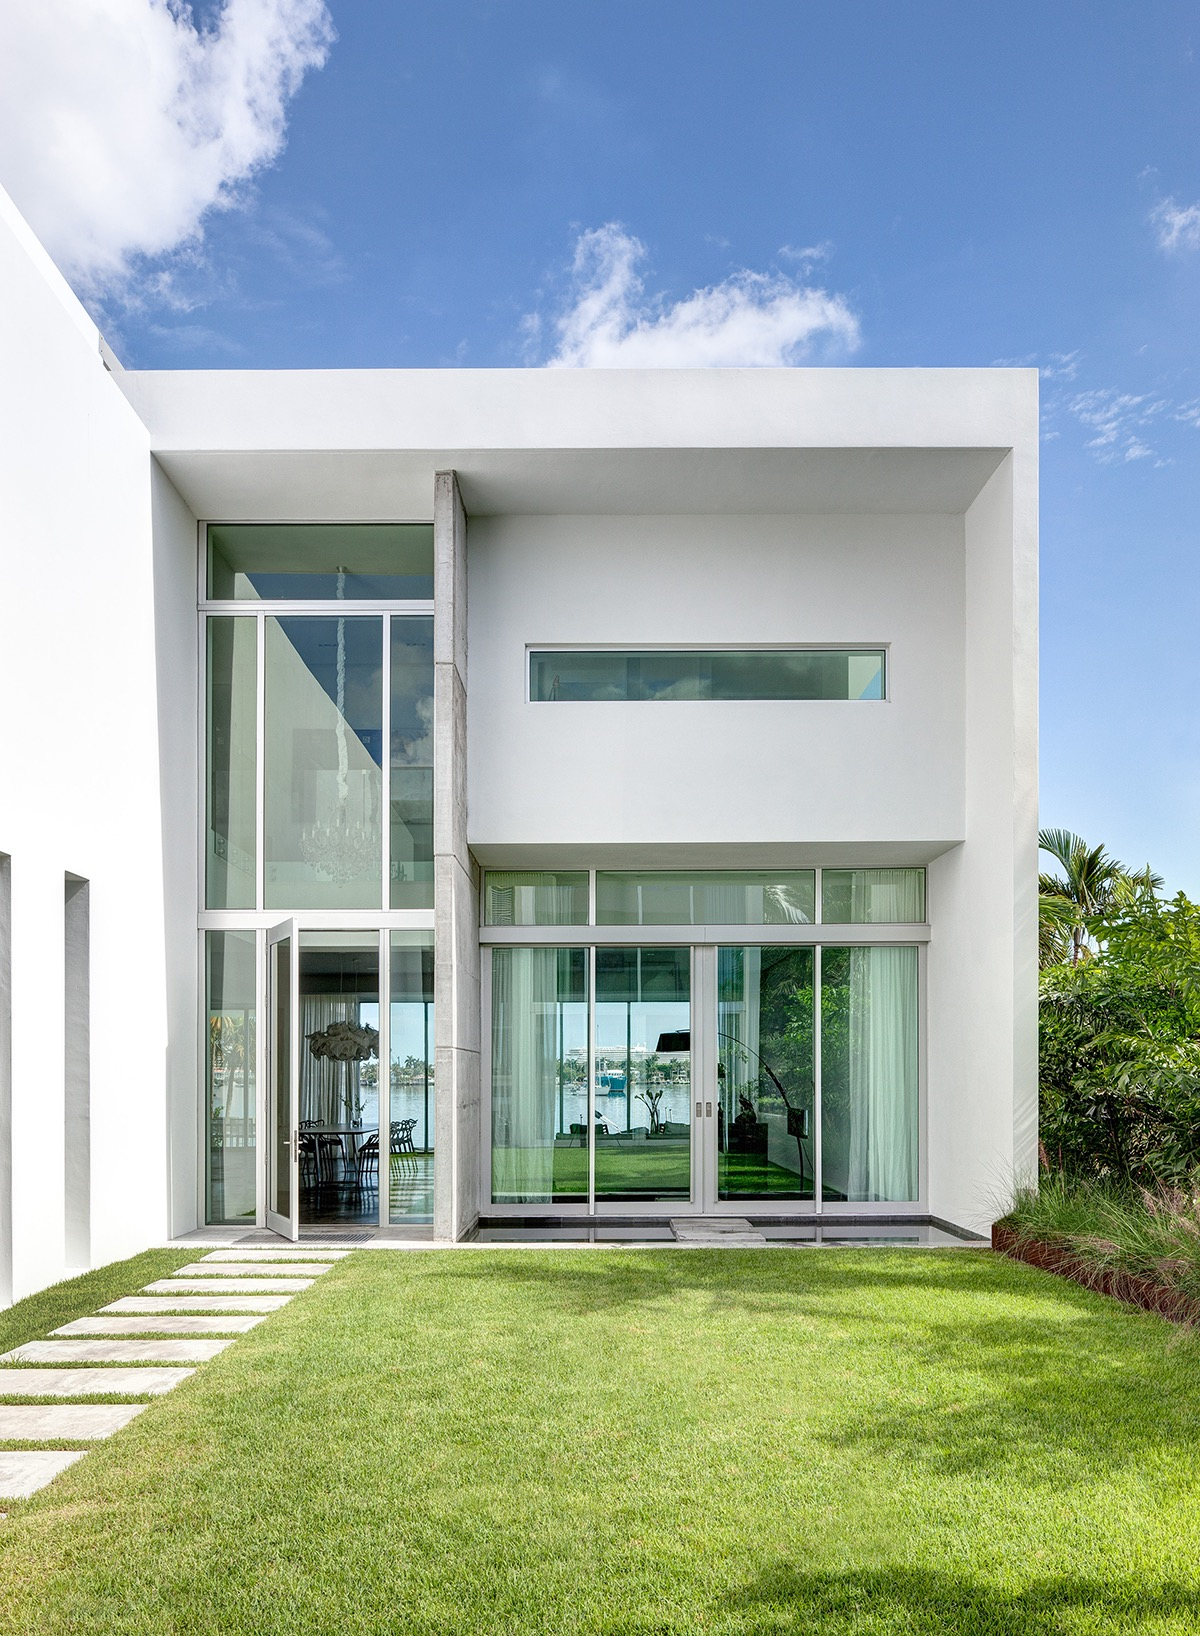 Lushly Landscaped Courtyard For Minimalist House Exterior (View 10 of 30)